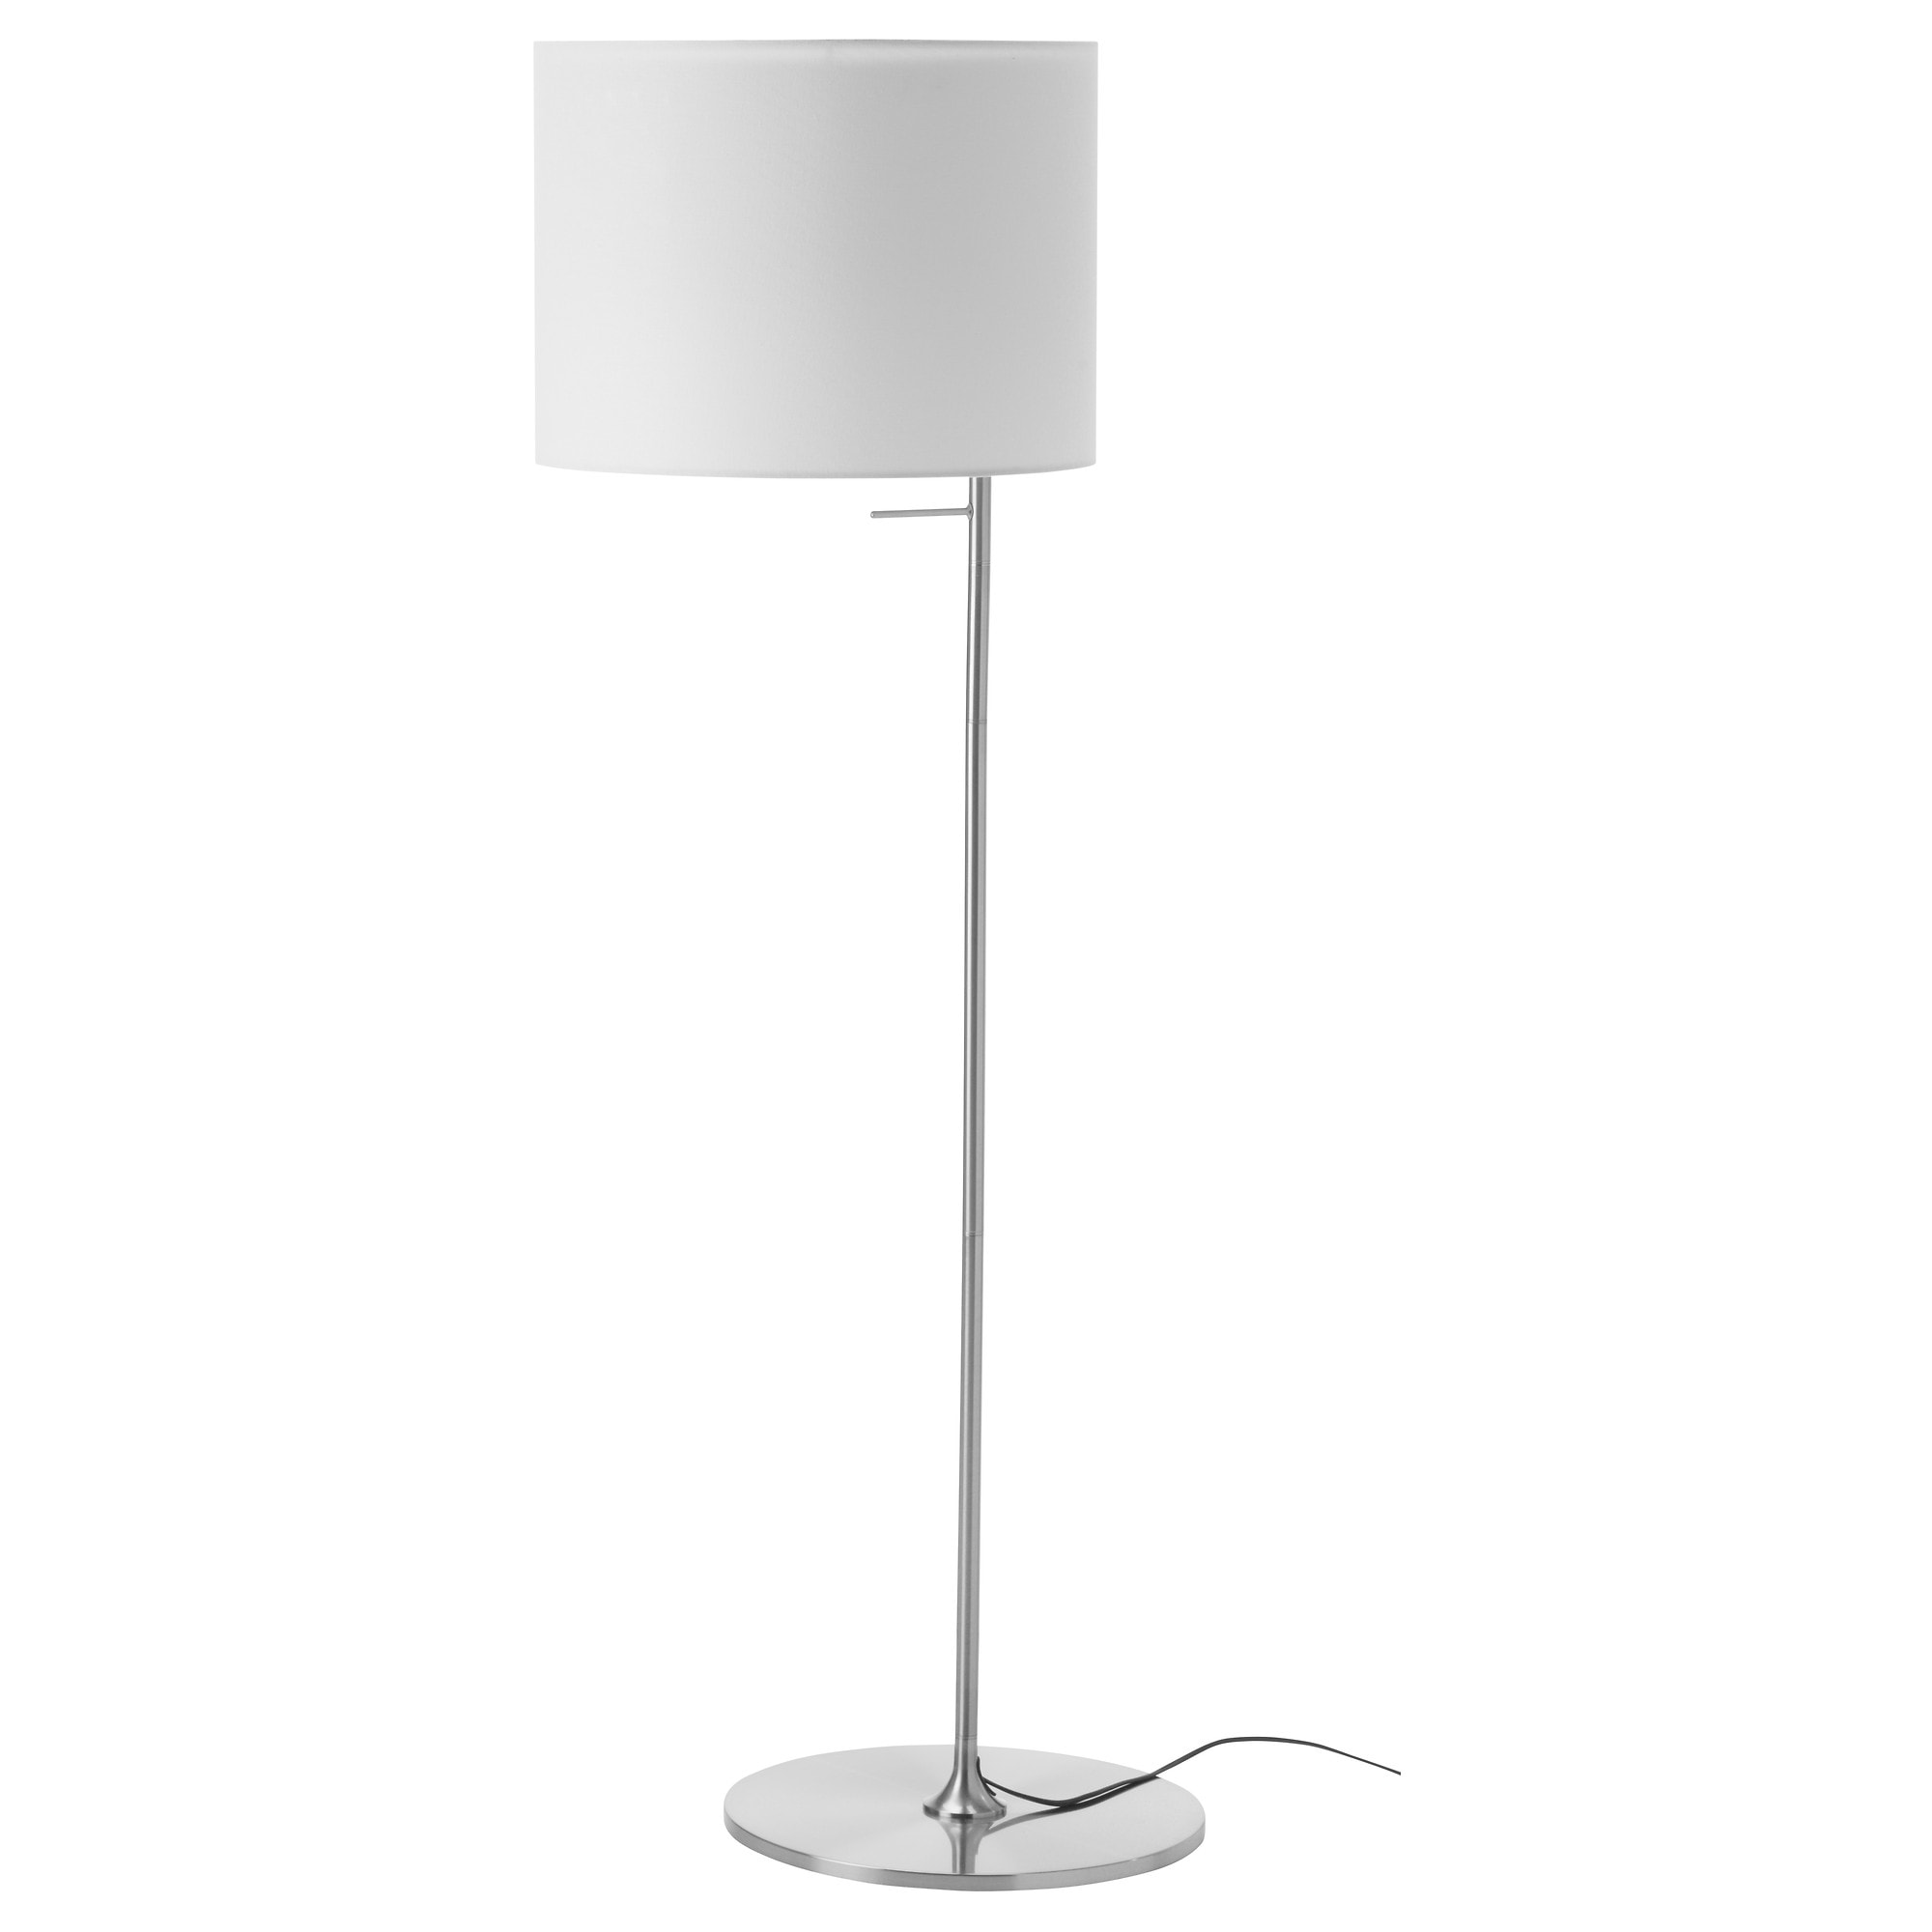 Ikea White Floor Lamp: ,Lighting